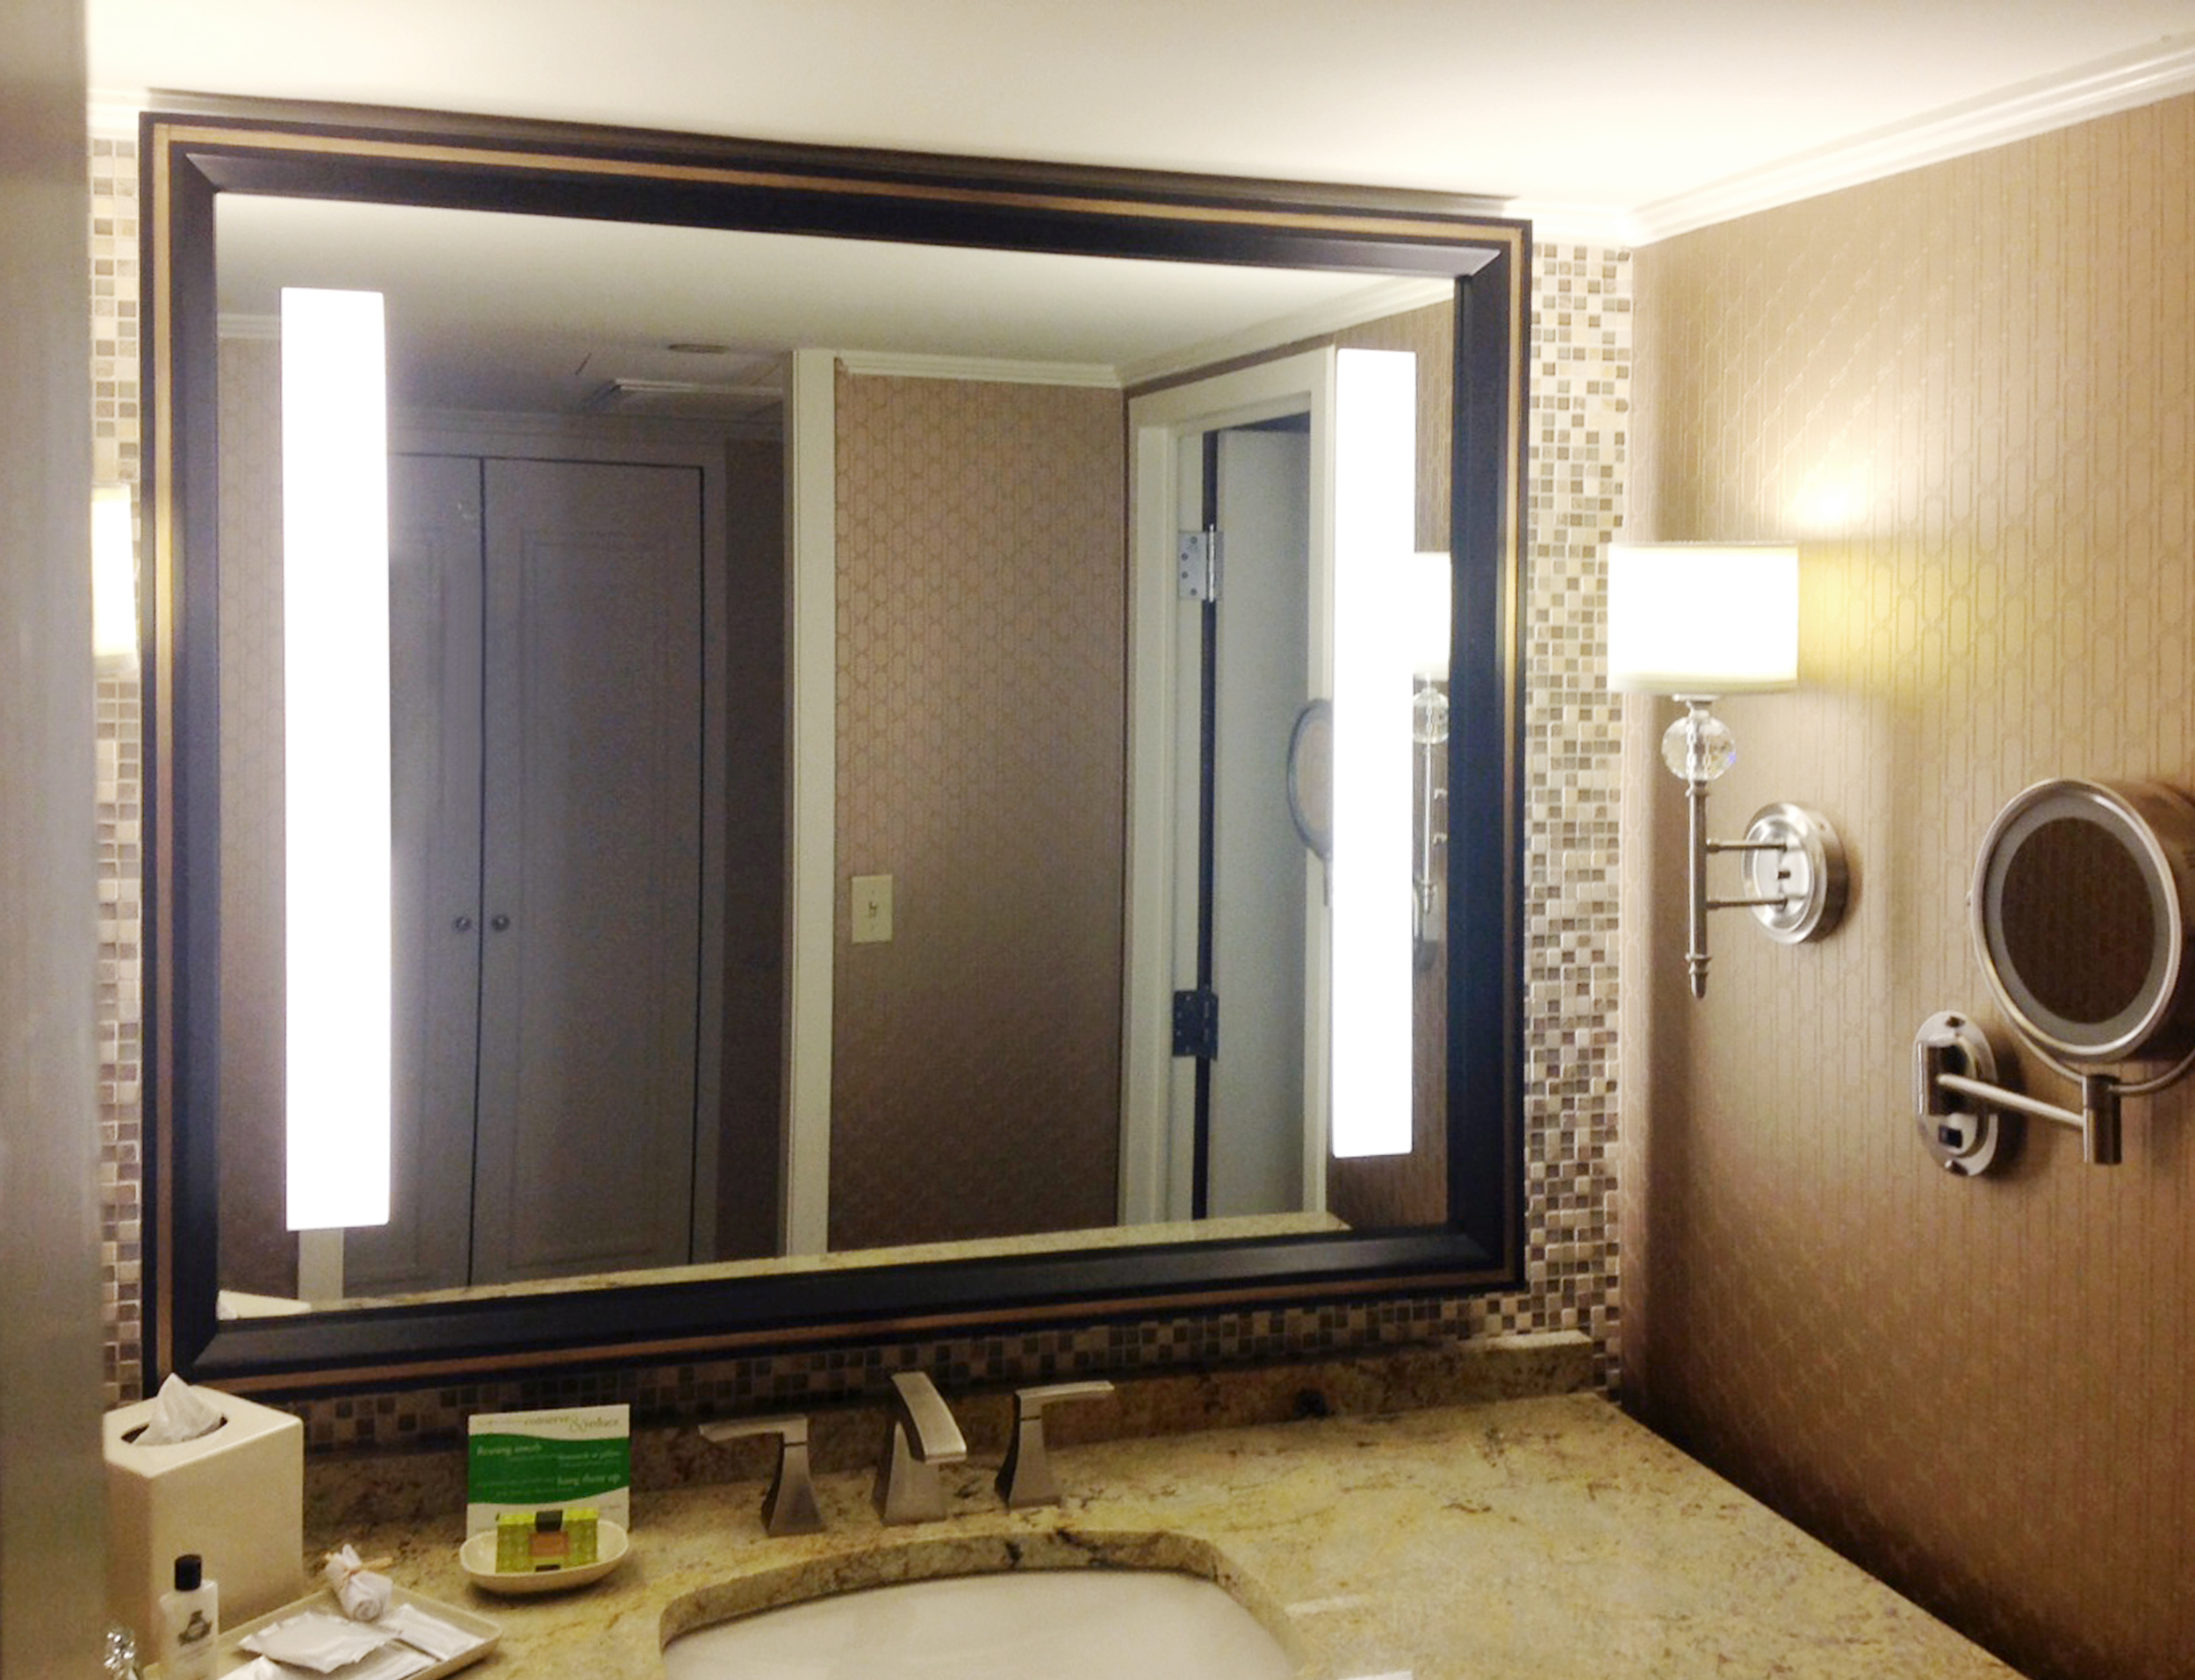 Custom Mirror Designed for Hotel Installation